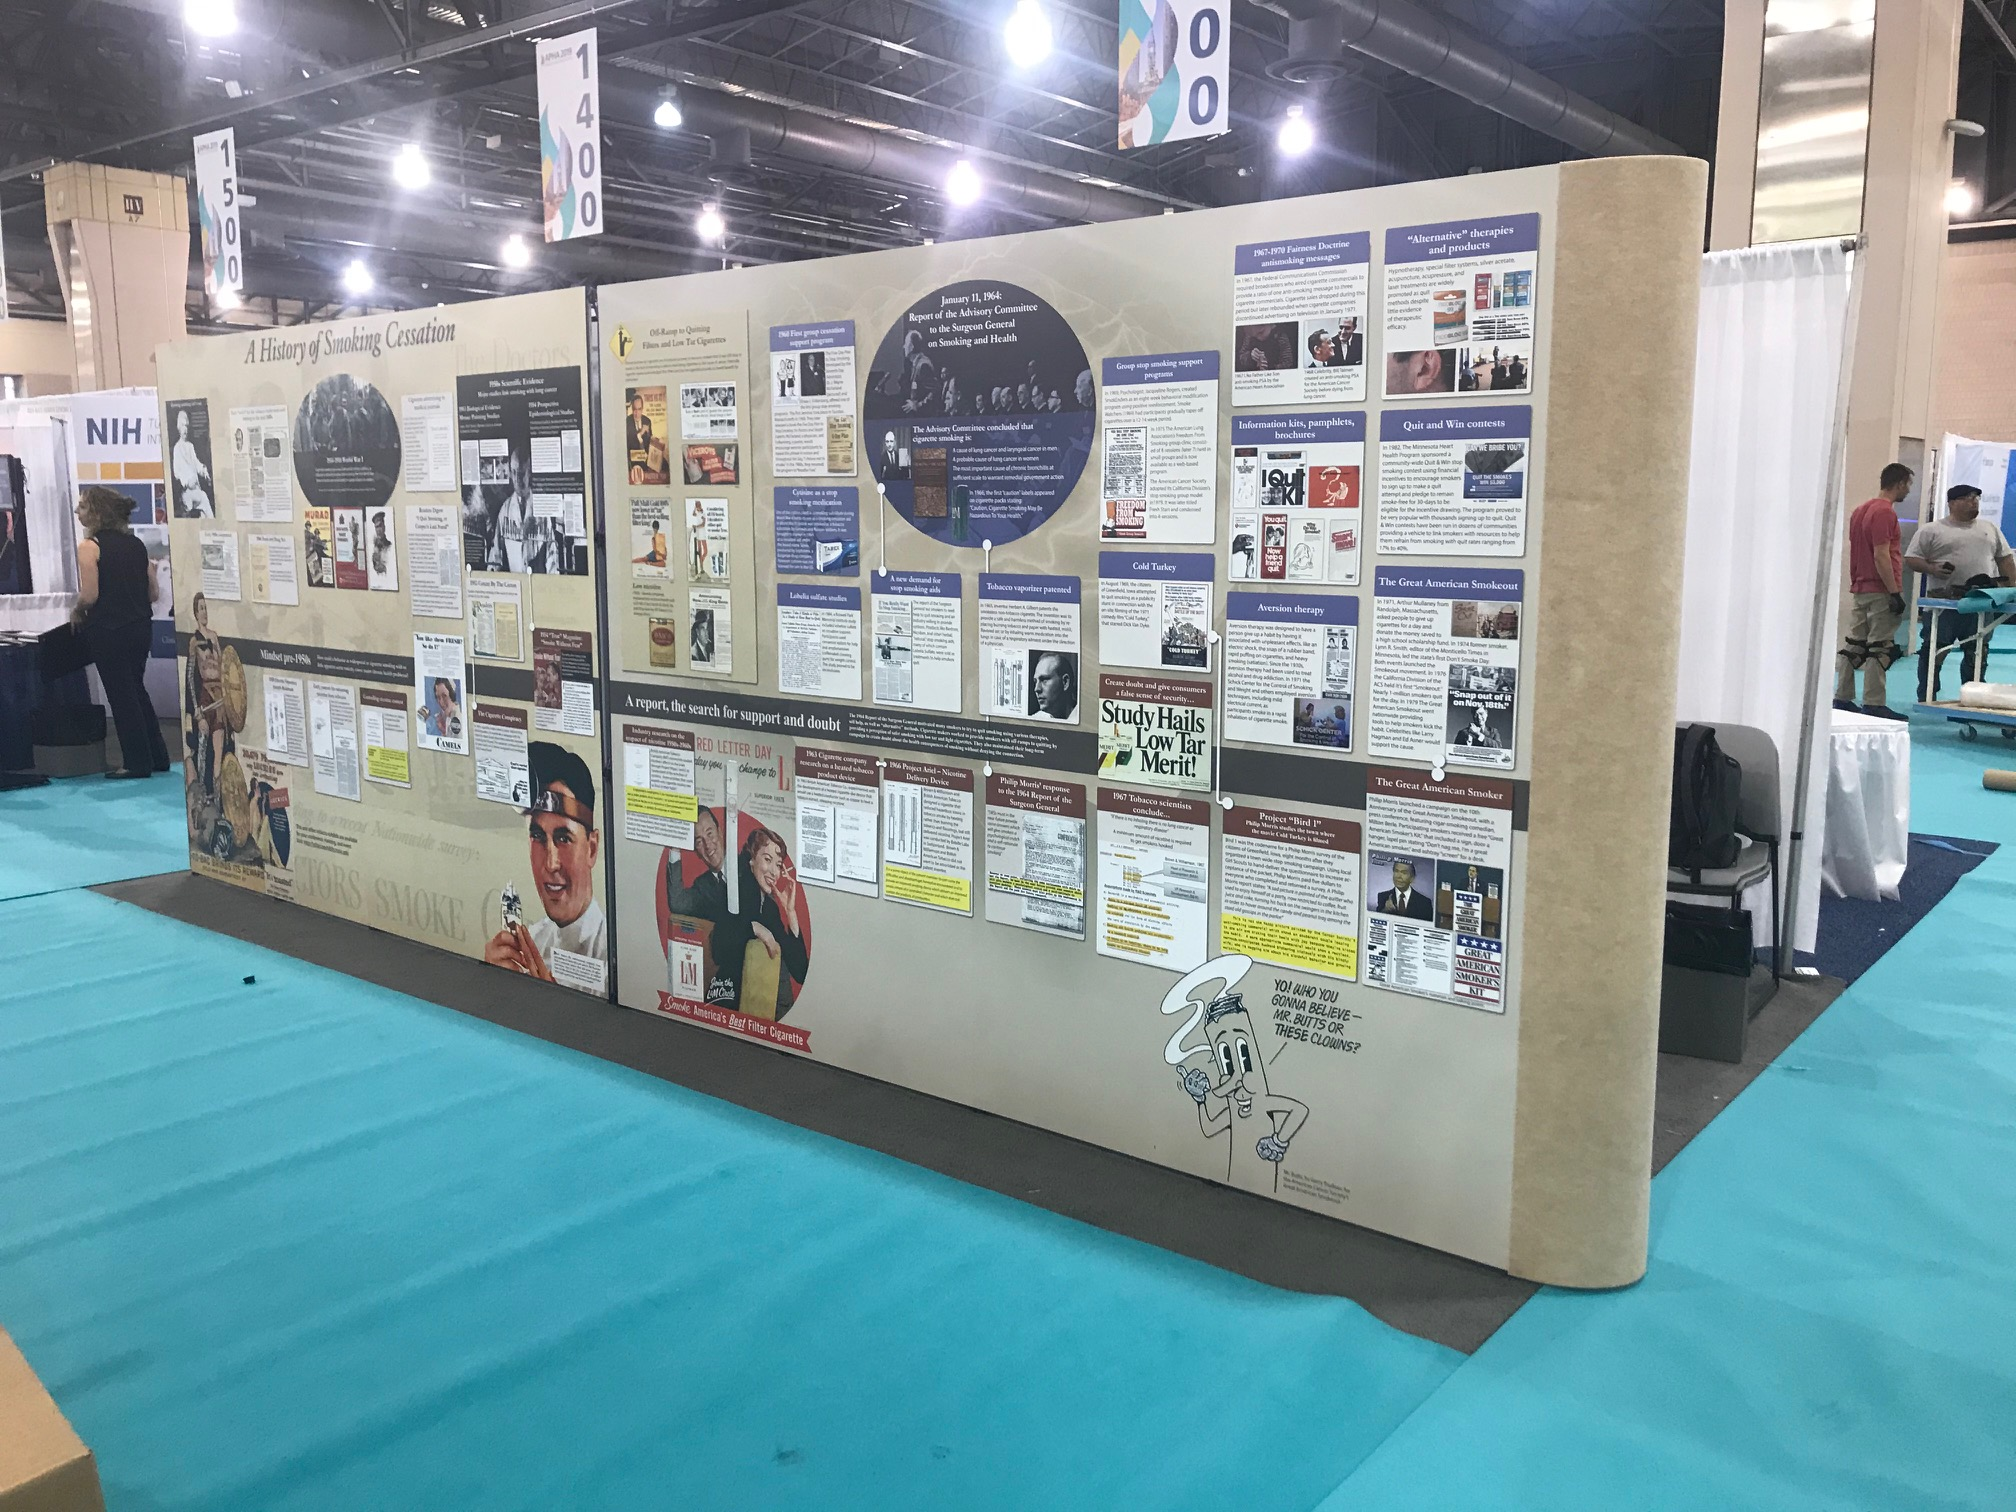 History of Smoking Cessation panels 1 and 2. Philadelphia, PA. Nov 2019